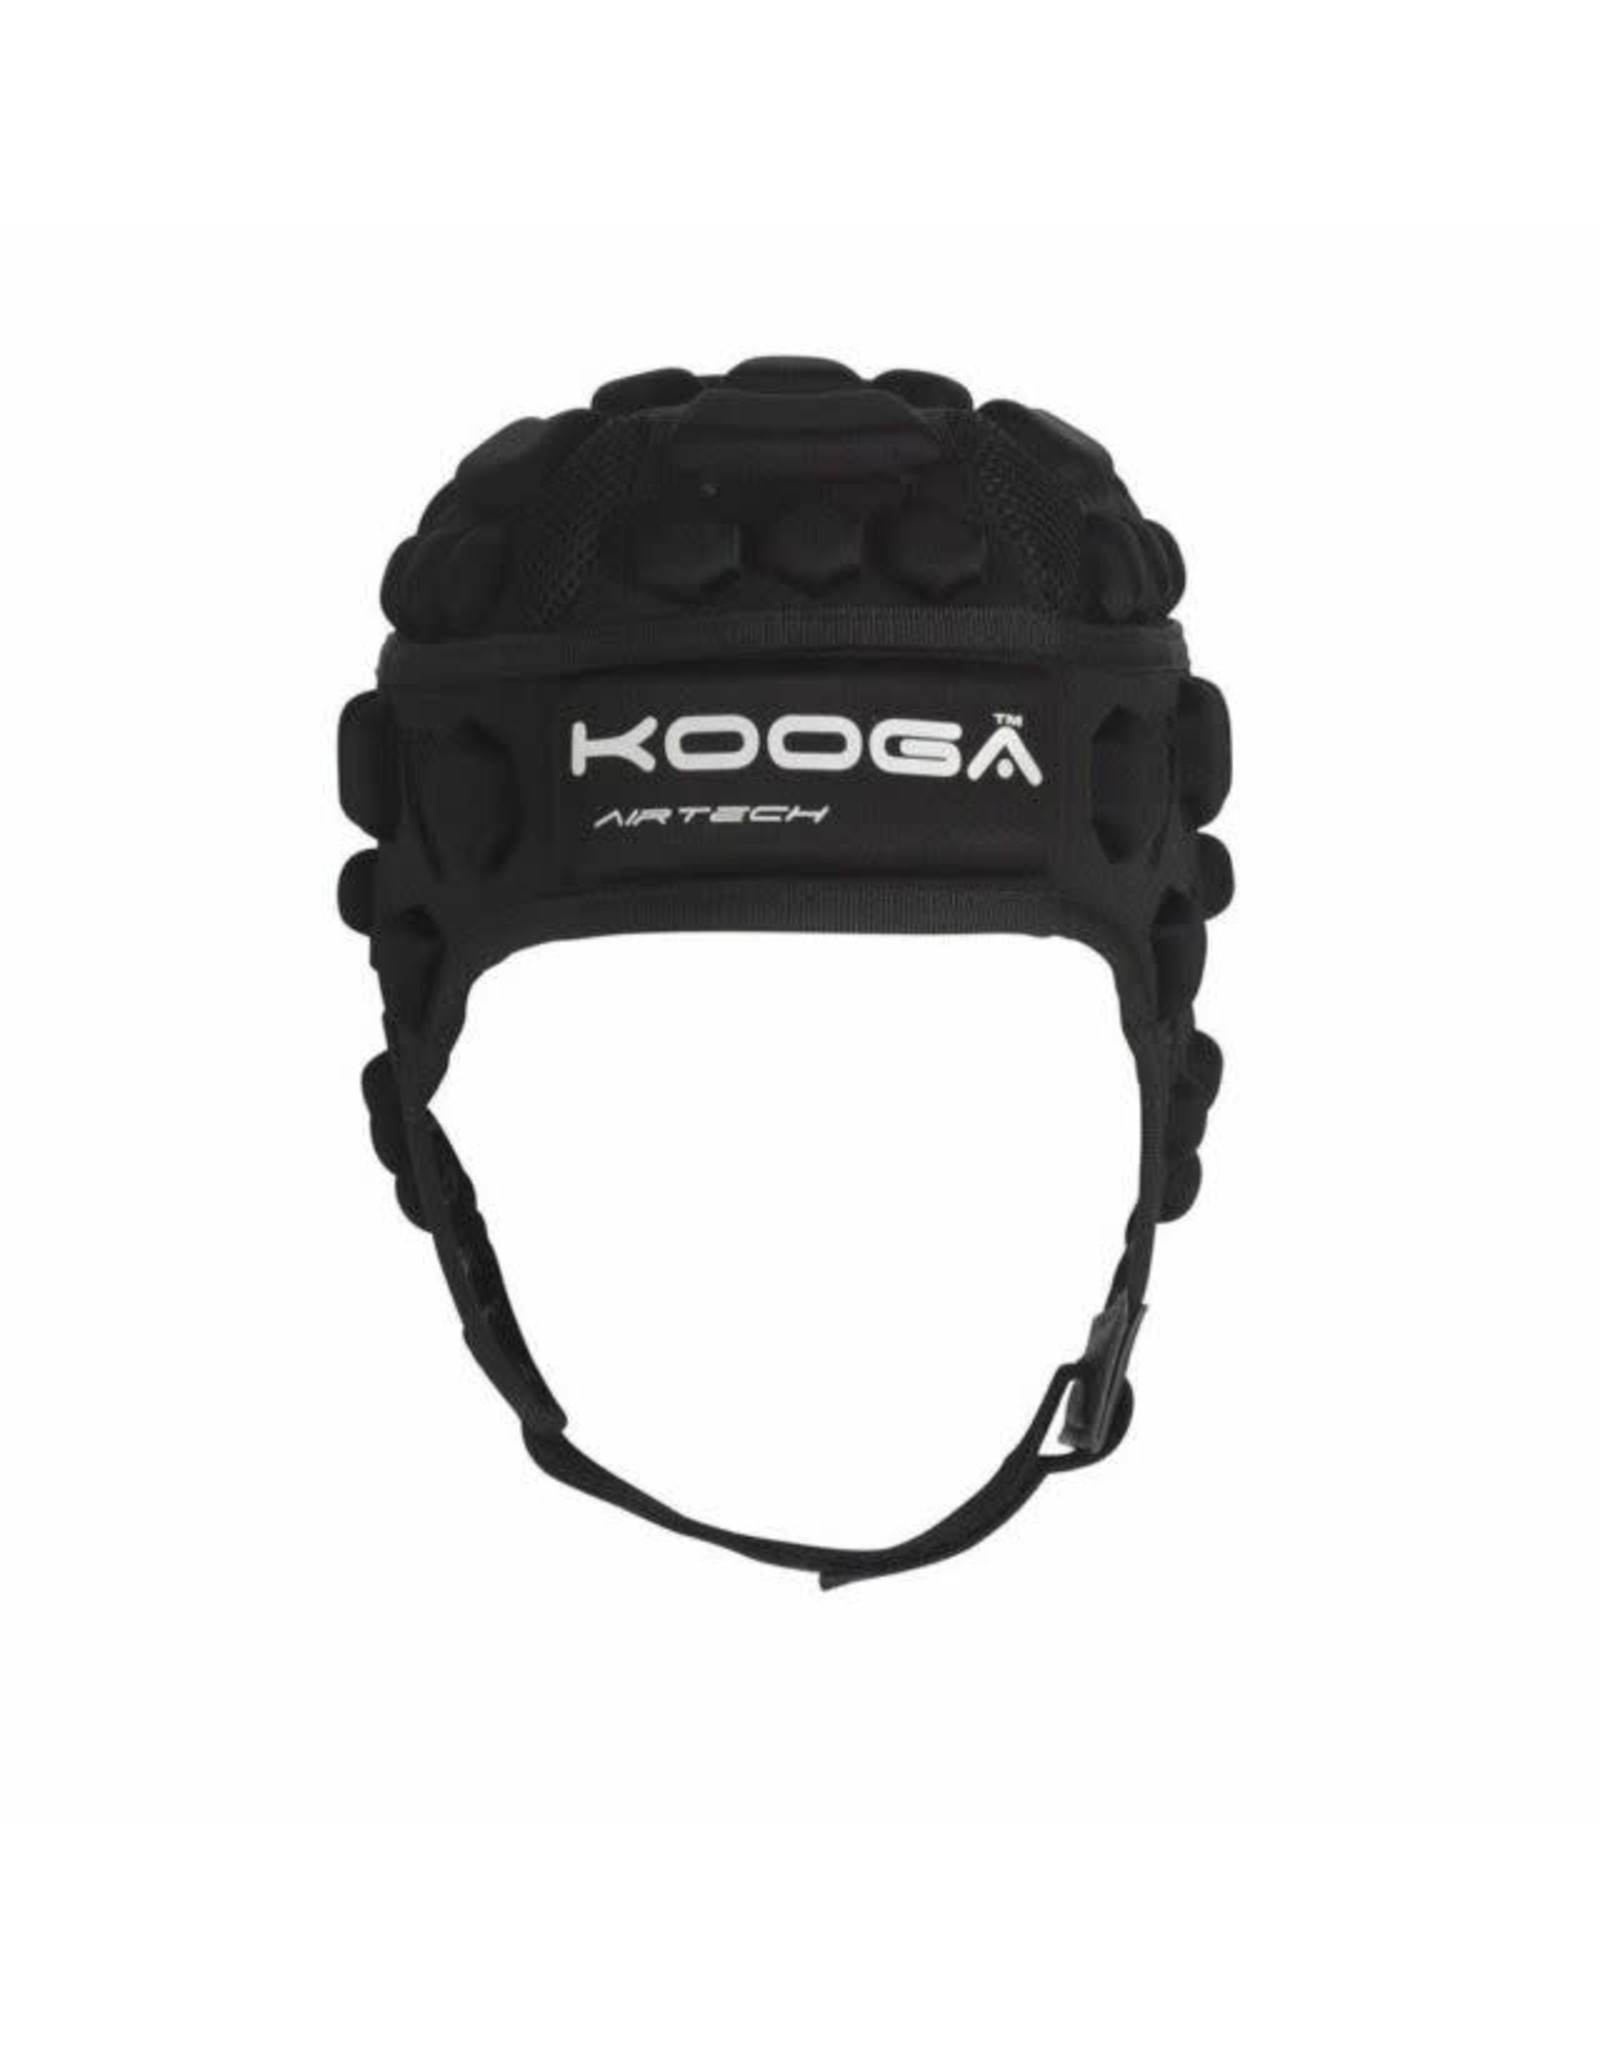 Kooga Kooga Dunedin Airtech Phase 1 Adults Black Headguard (Large)